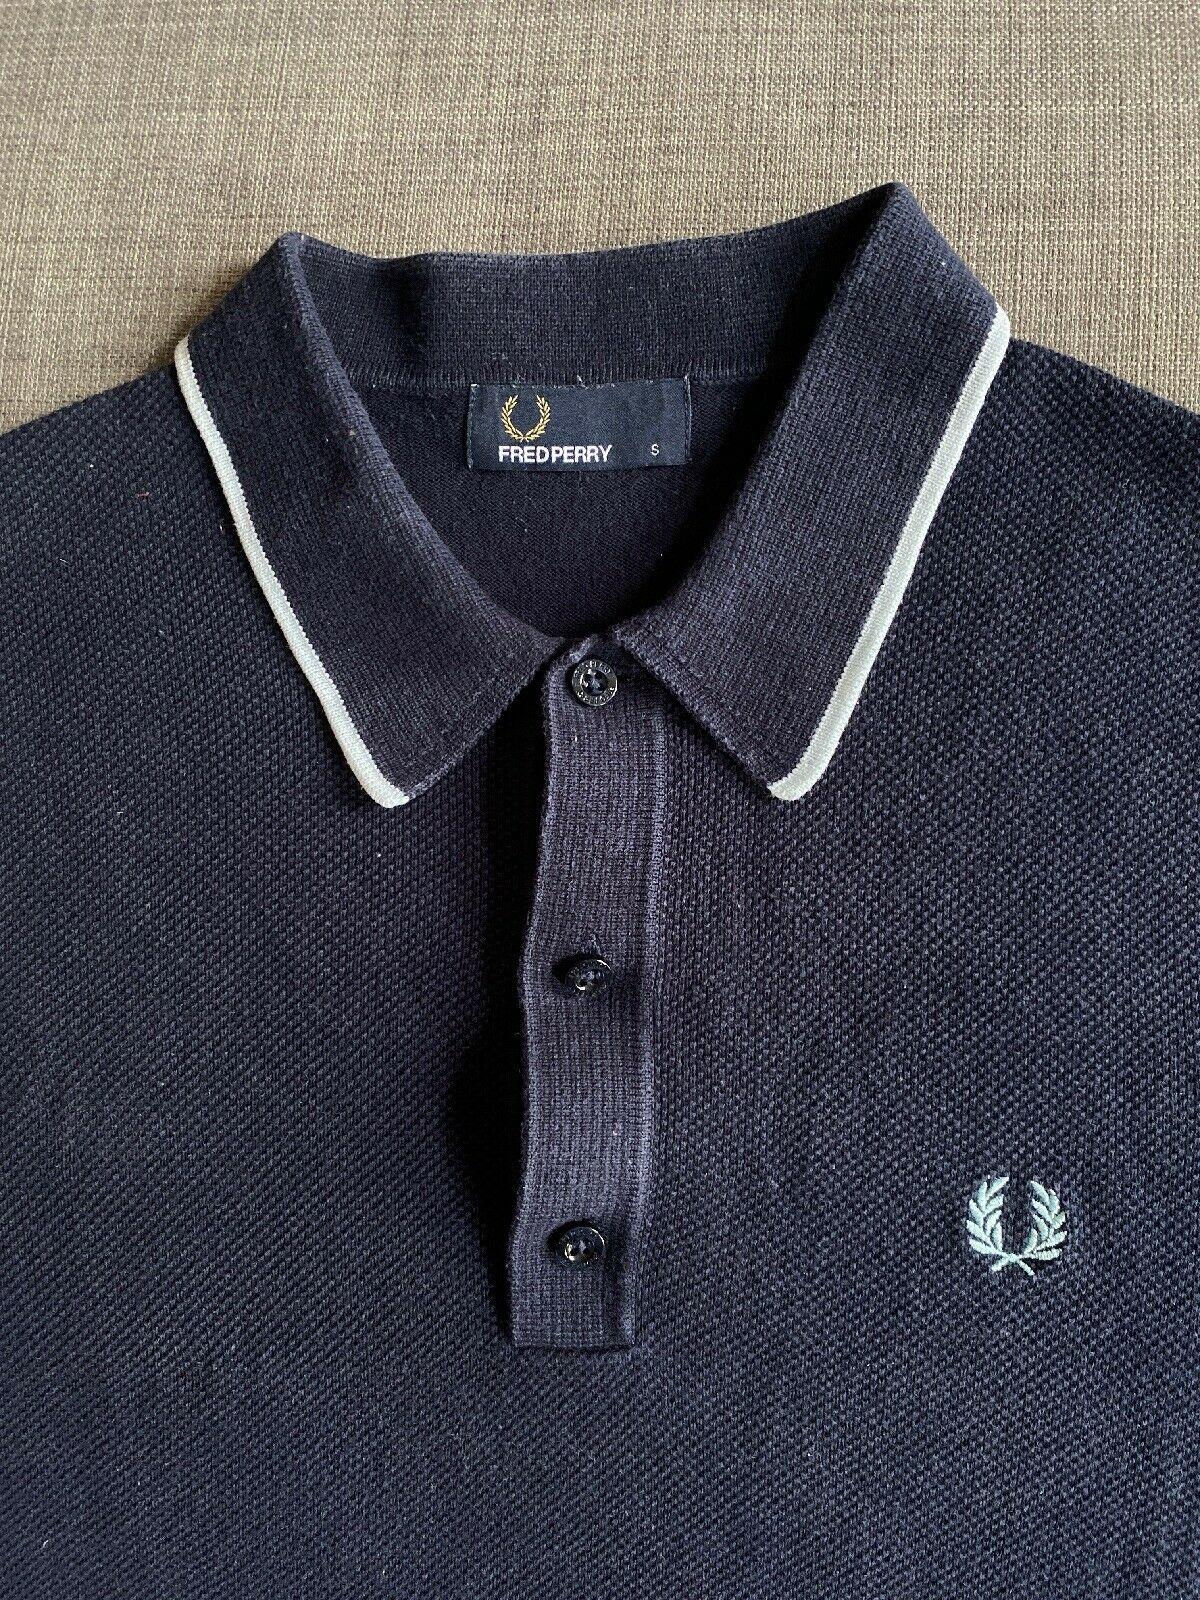 Fred Perry Mens Textured Zip Nk Knitted Shirt